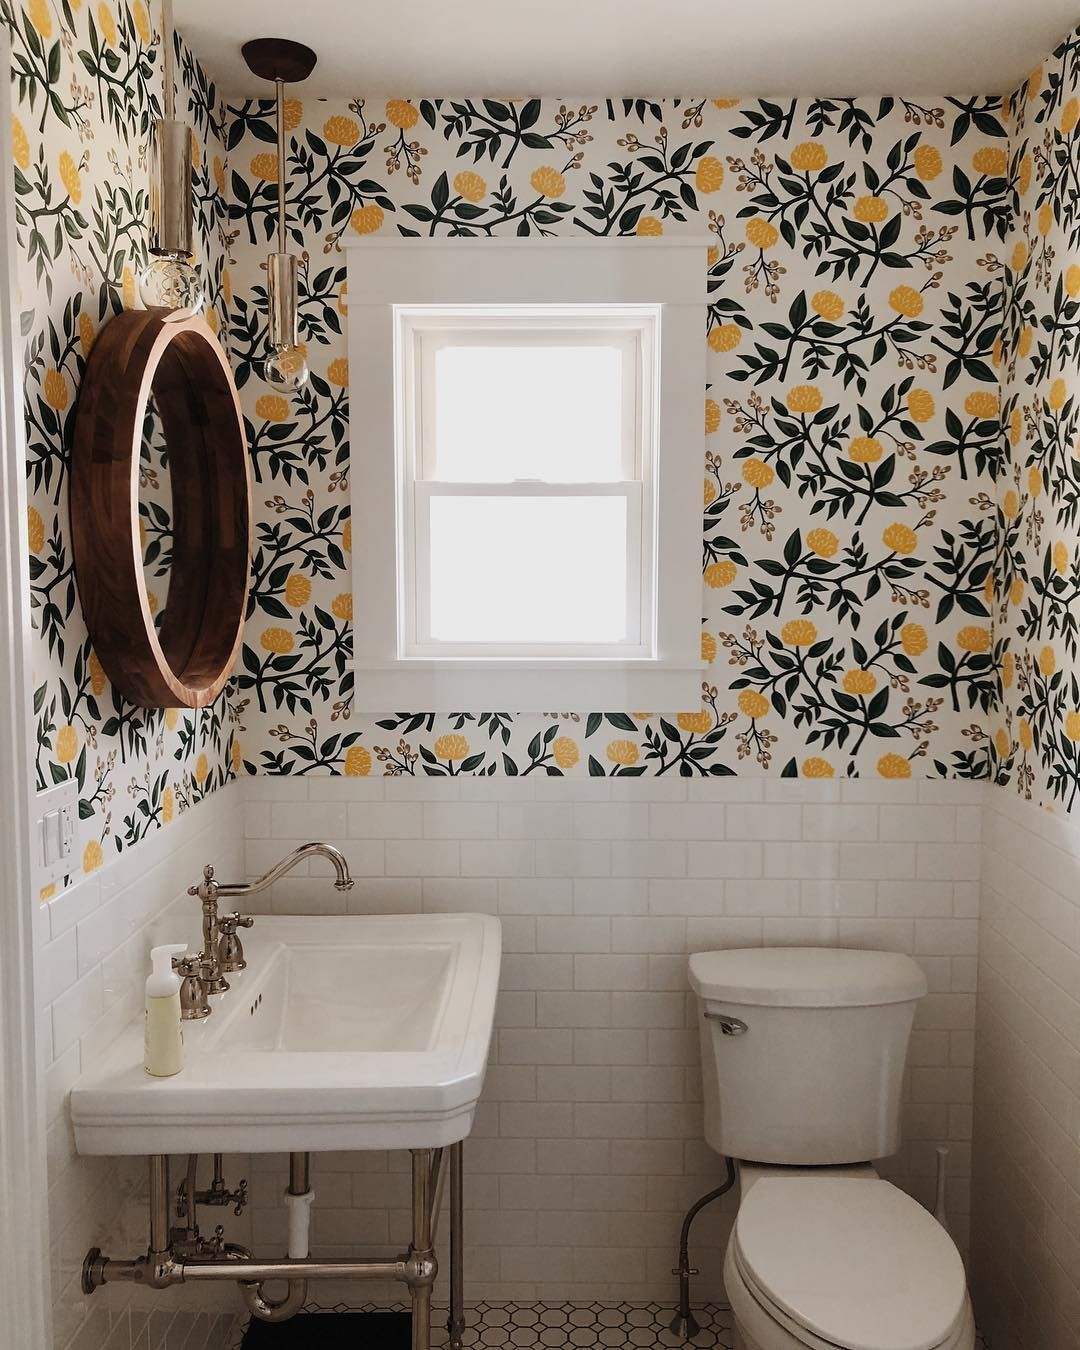 The Best Wallpaper Moments On Instagram Chairish Blog In 2020 Home How To Install Wallpaper Home Decor Inspiration